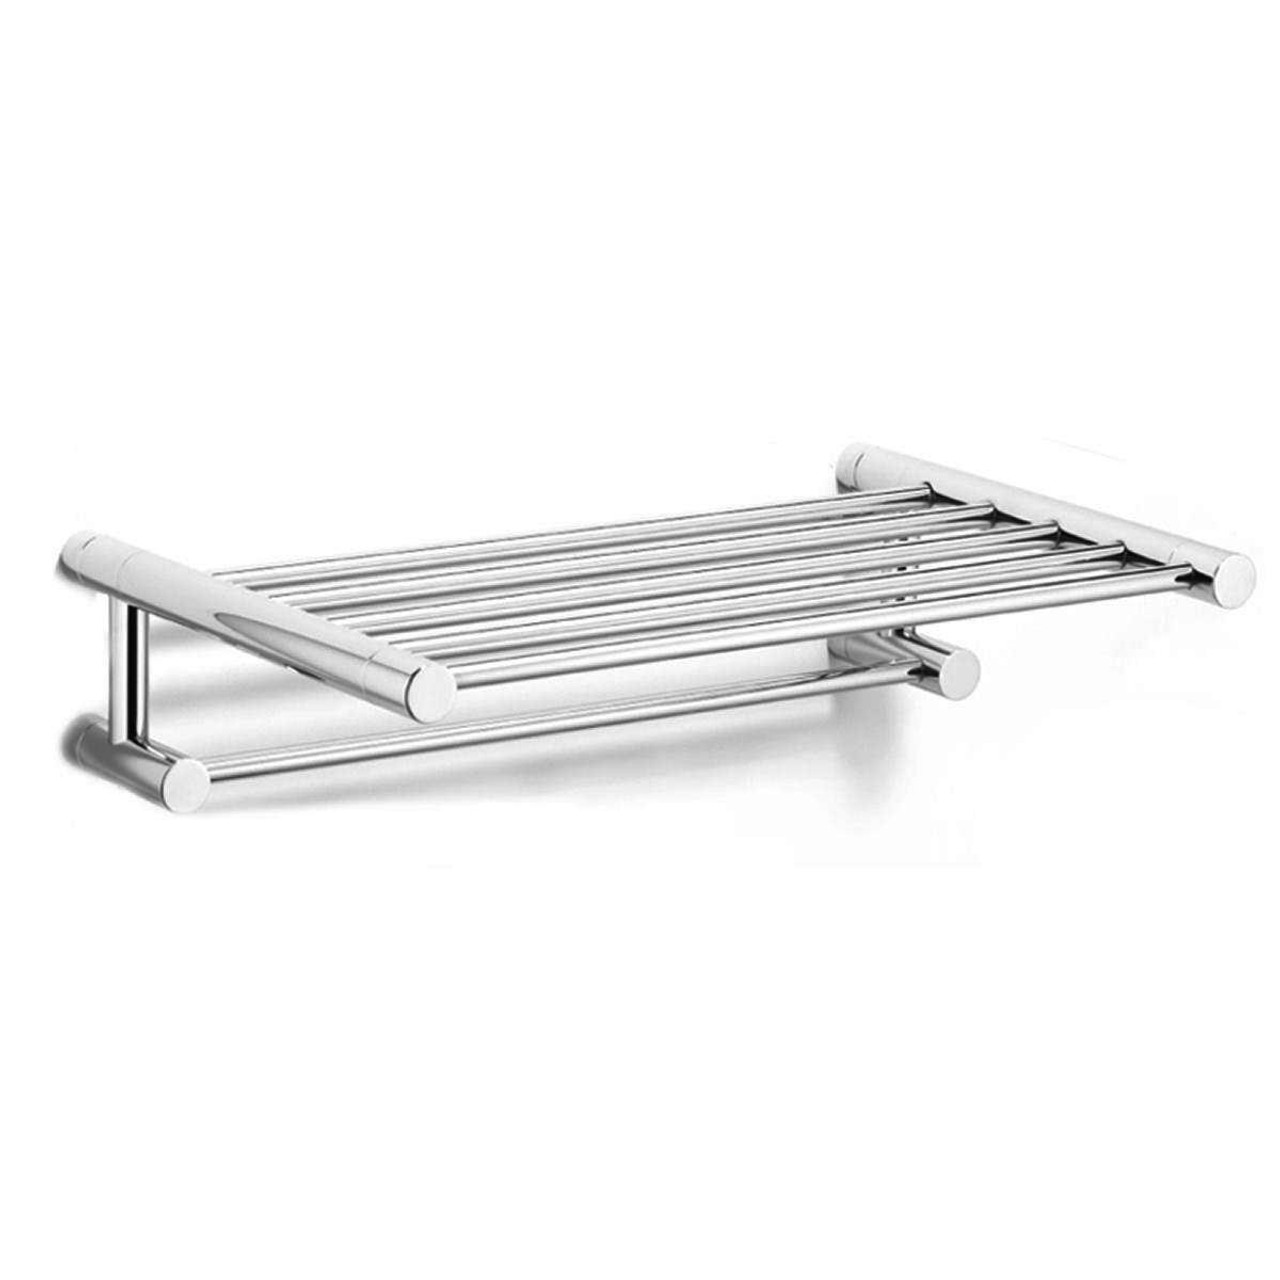 Chrome Plated Samuel Heath Xenon Towel Shelf N5173